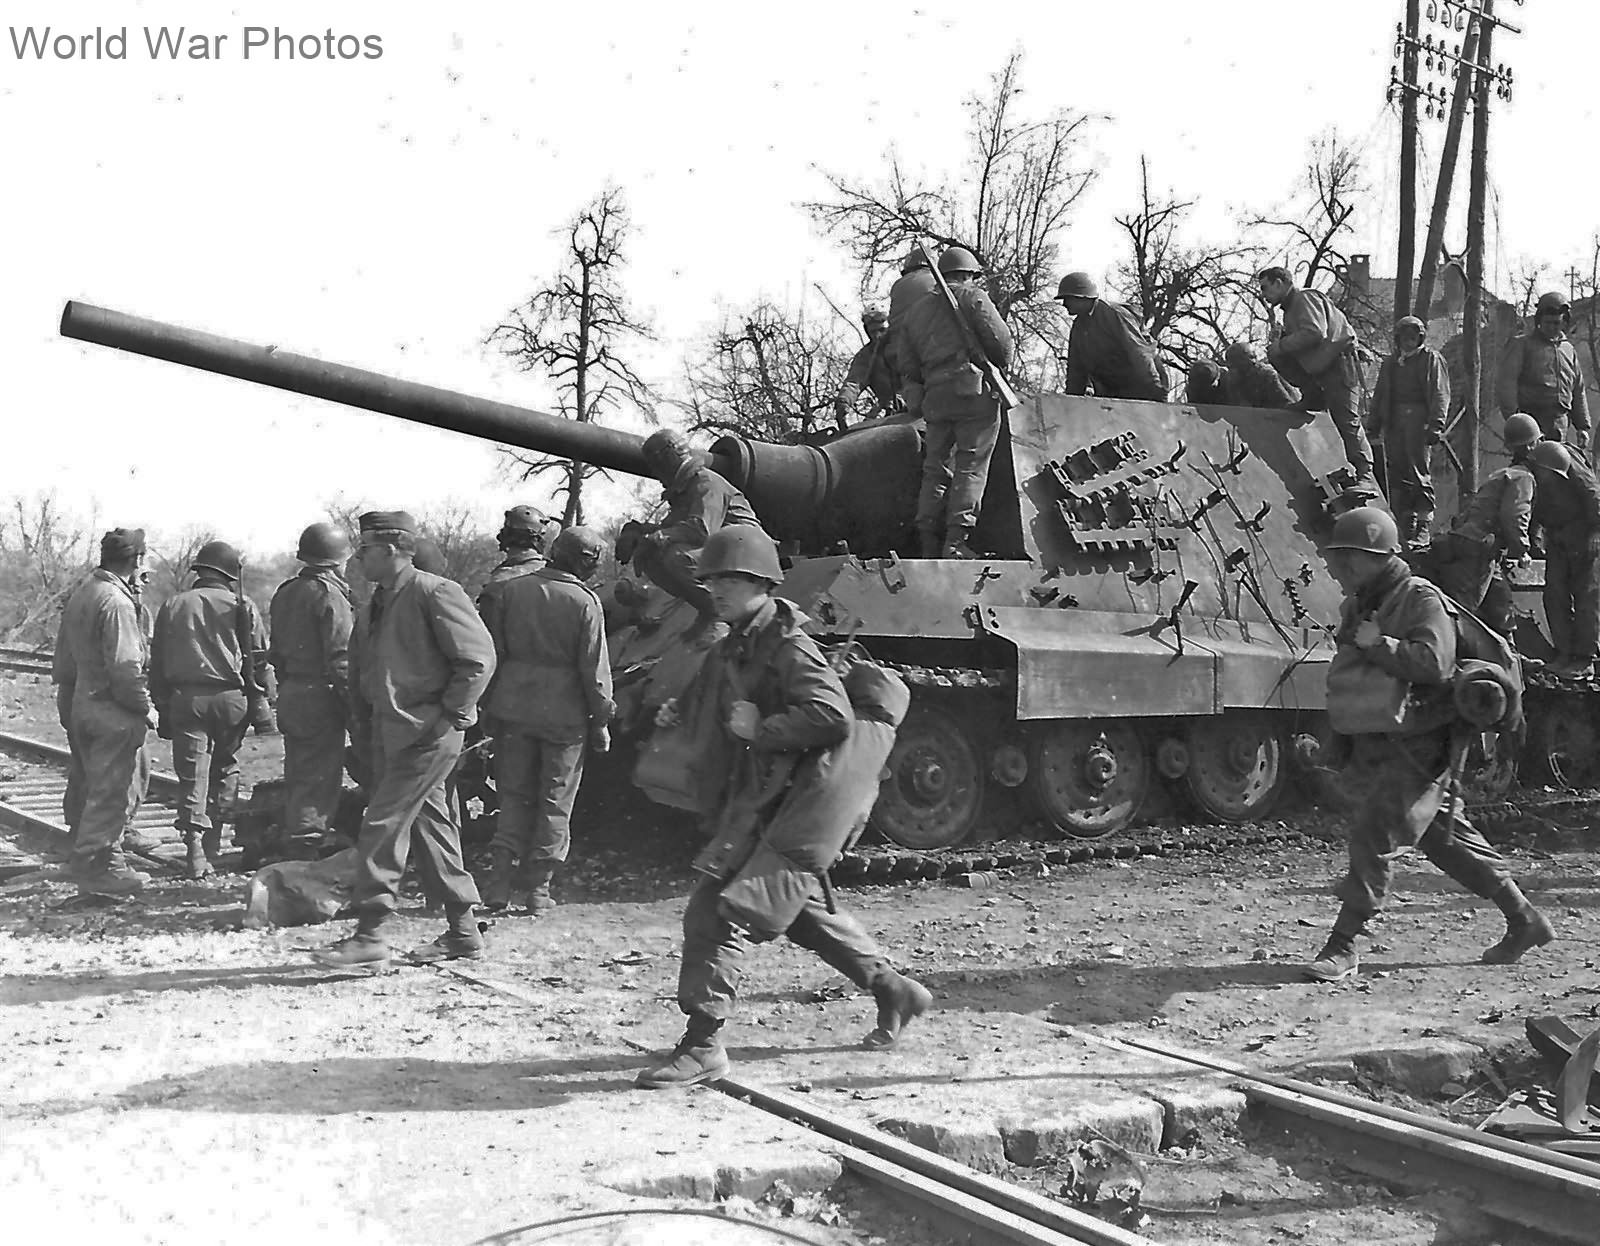 Jagdtiger 234 of the 653 sPzJgAbt and troops from U.S. 36 ID in Soultz France 18 March 1945